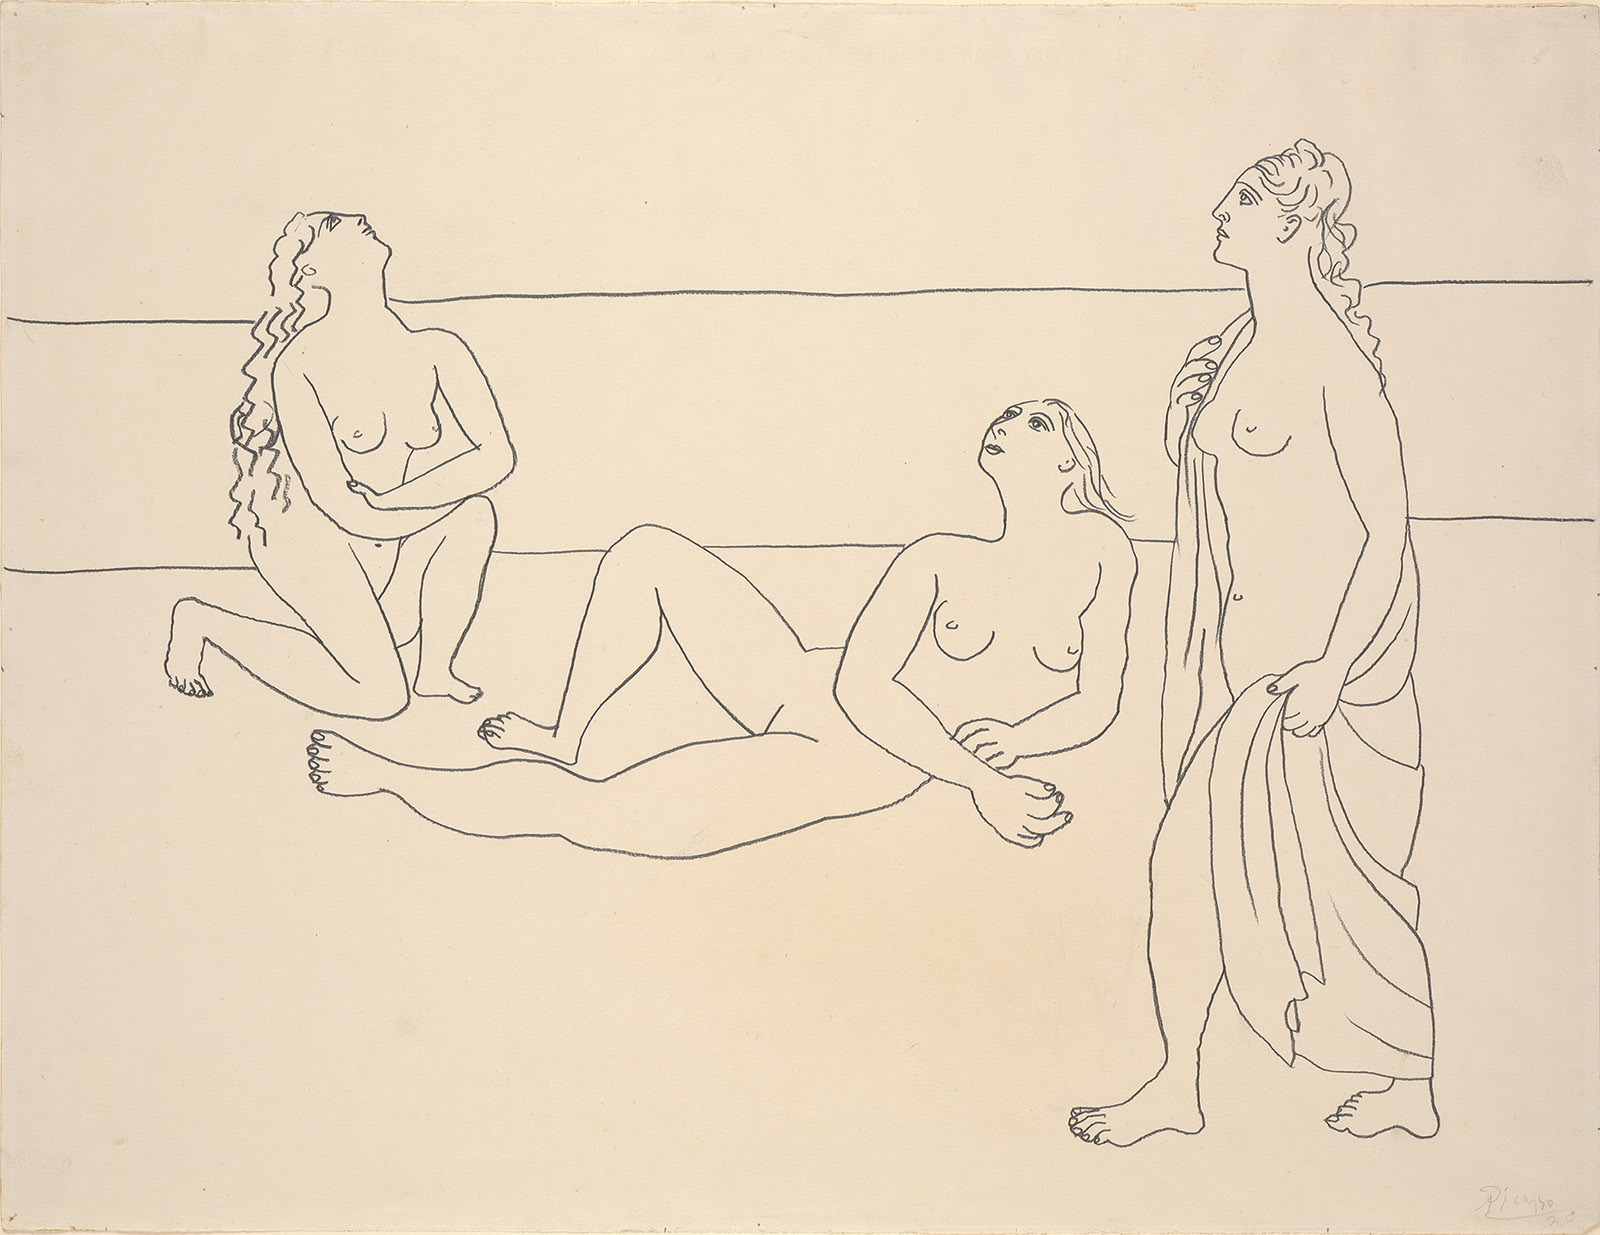 Pablo Picasso: Three Bathers by the Shore, 1920